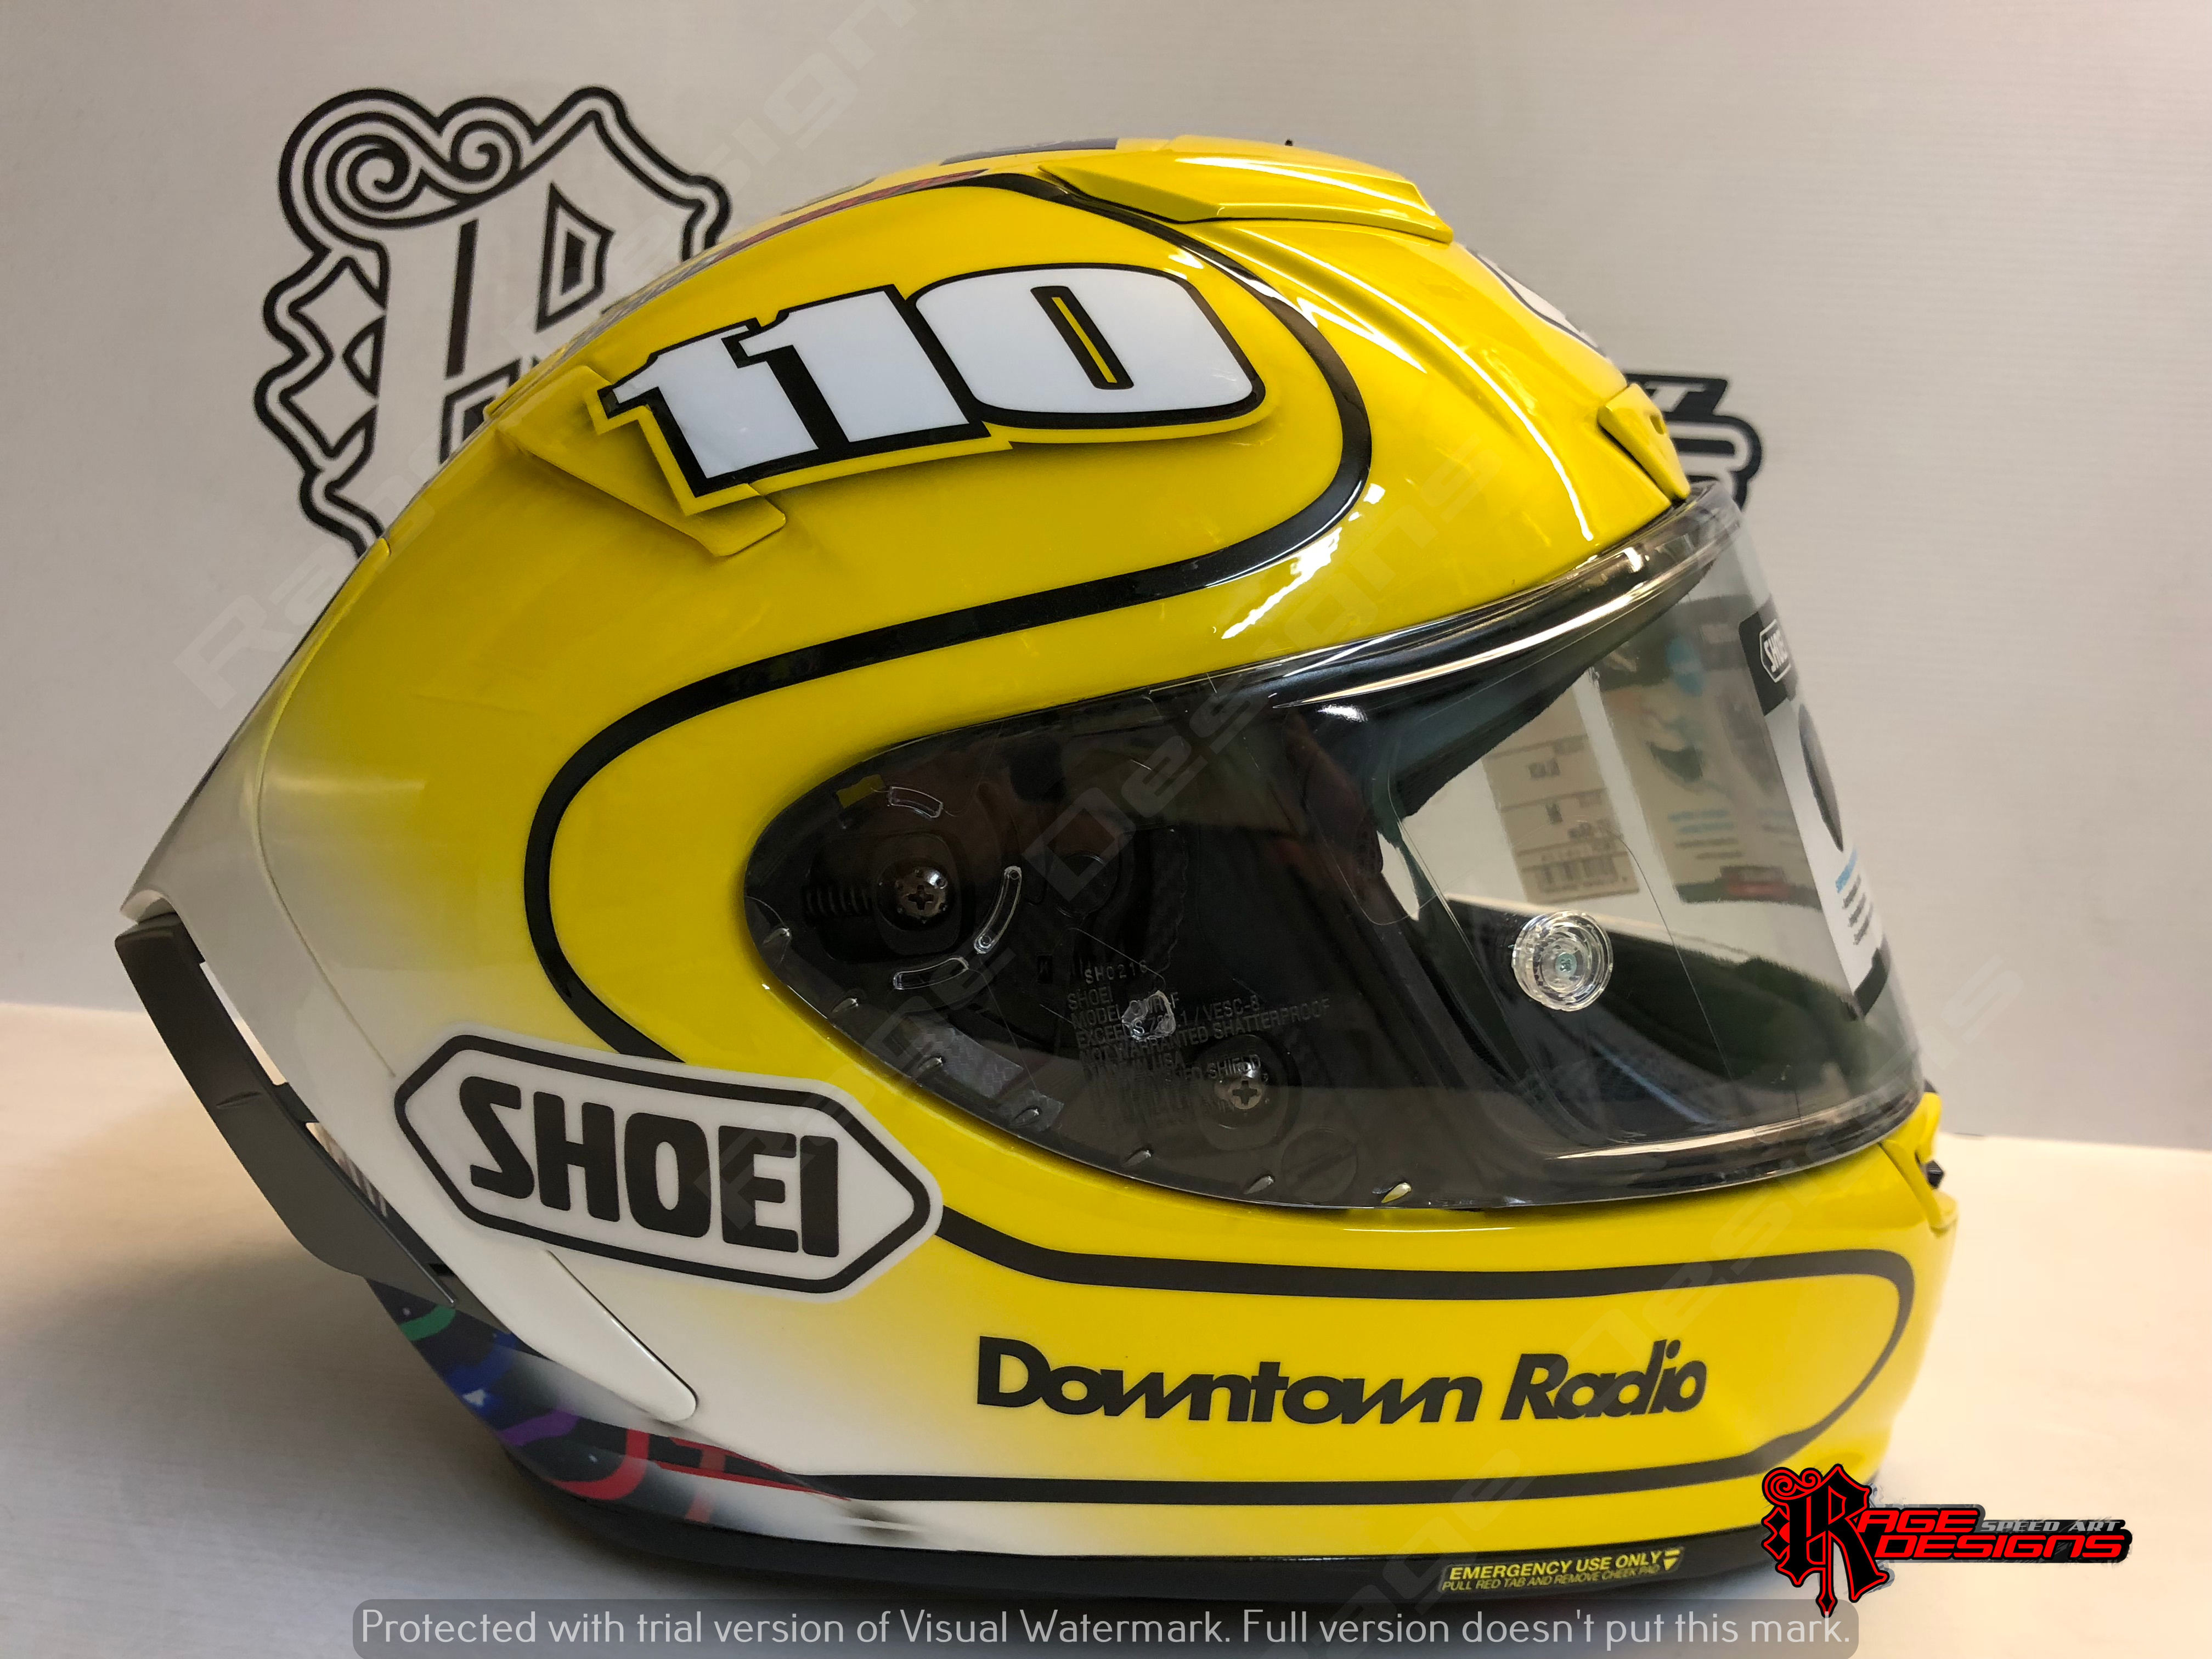 Joey Dunlop Style by Rage Designs